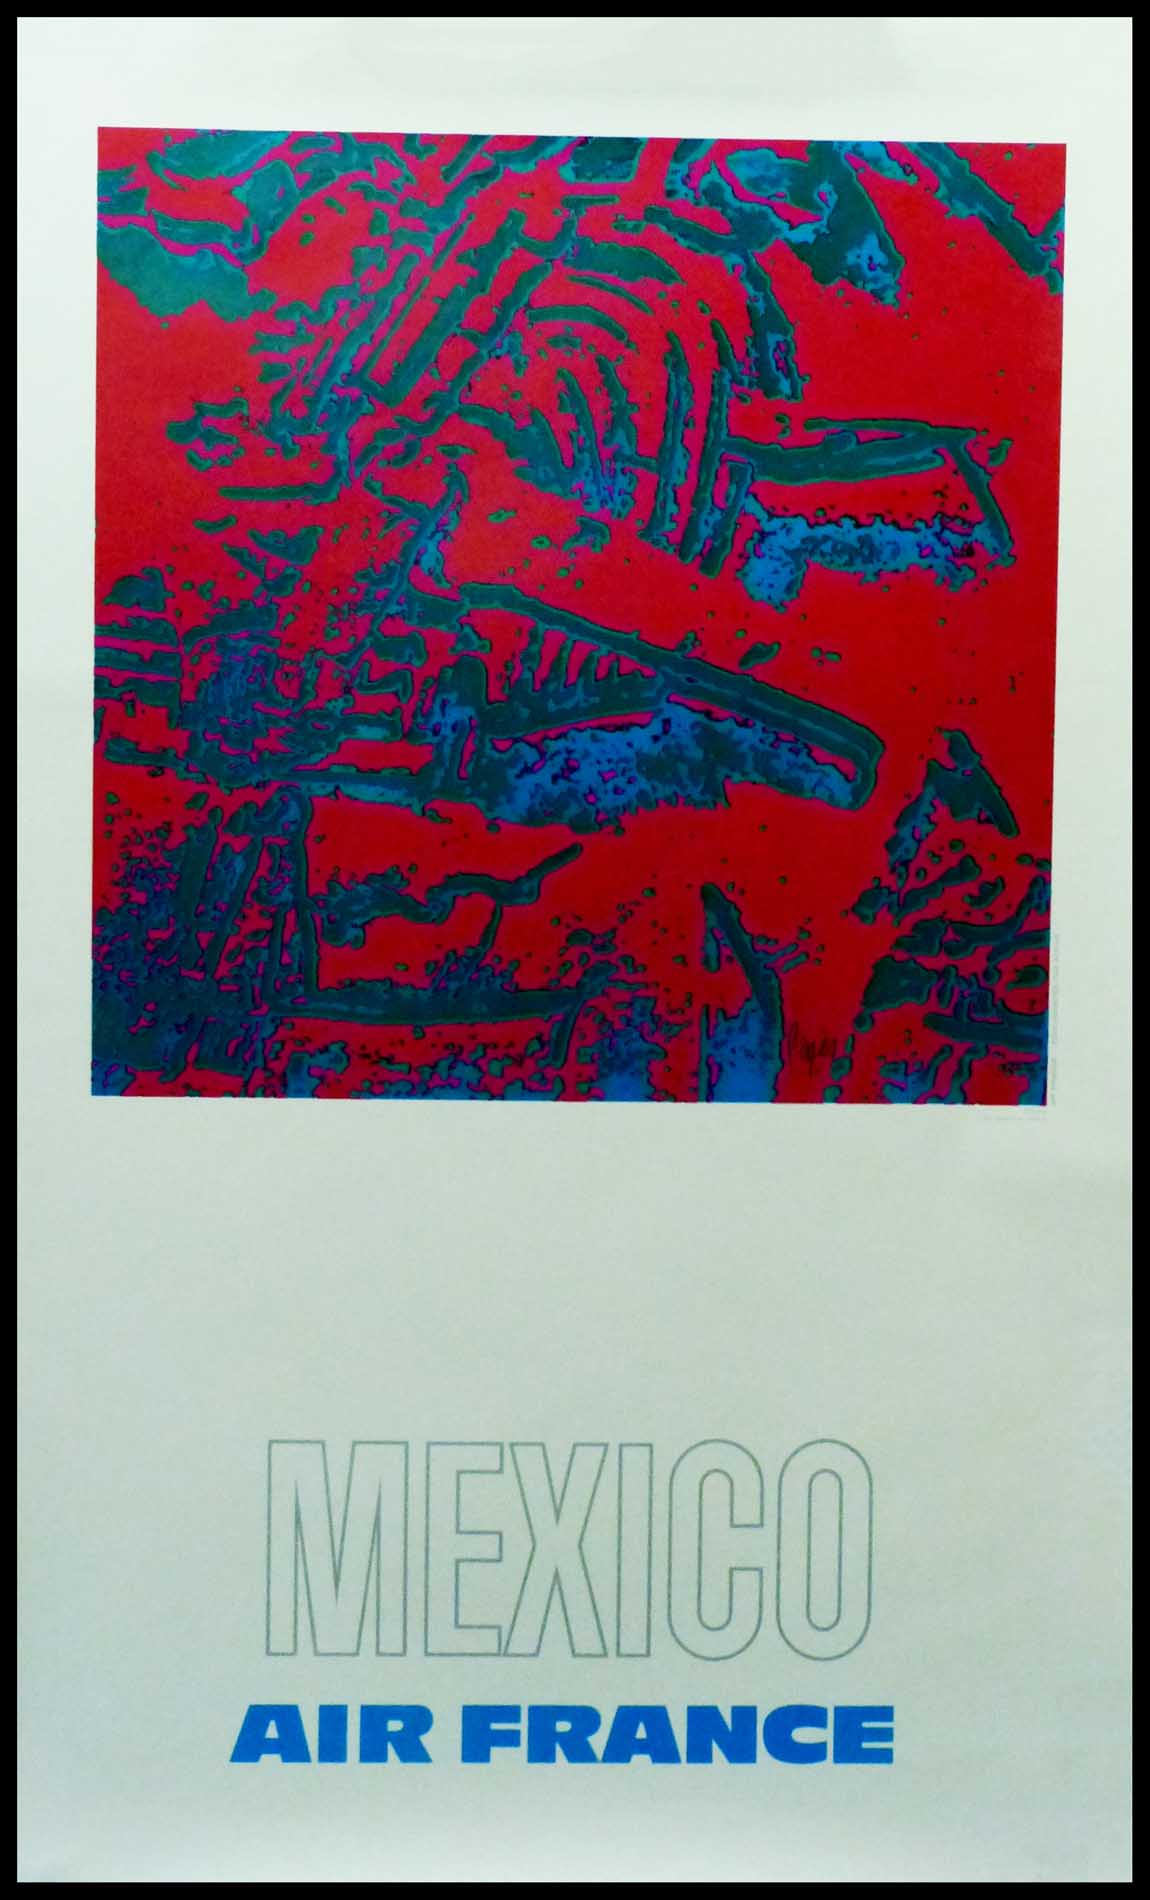 "(Alt=""original vintage travel poster, AIR FRANCE MEXICO 1971 signed in the plate by Raymond PAGEs and printed by Equi-densités Kodak"")"